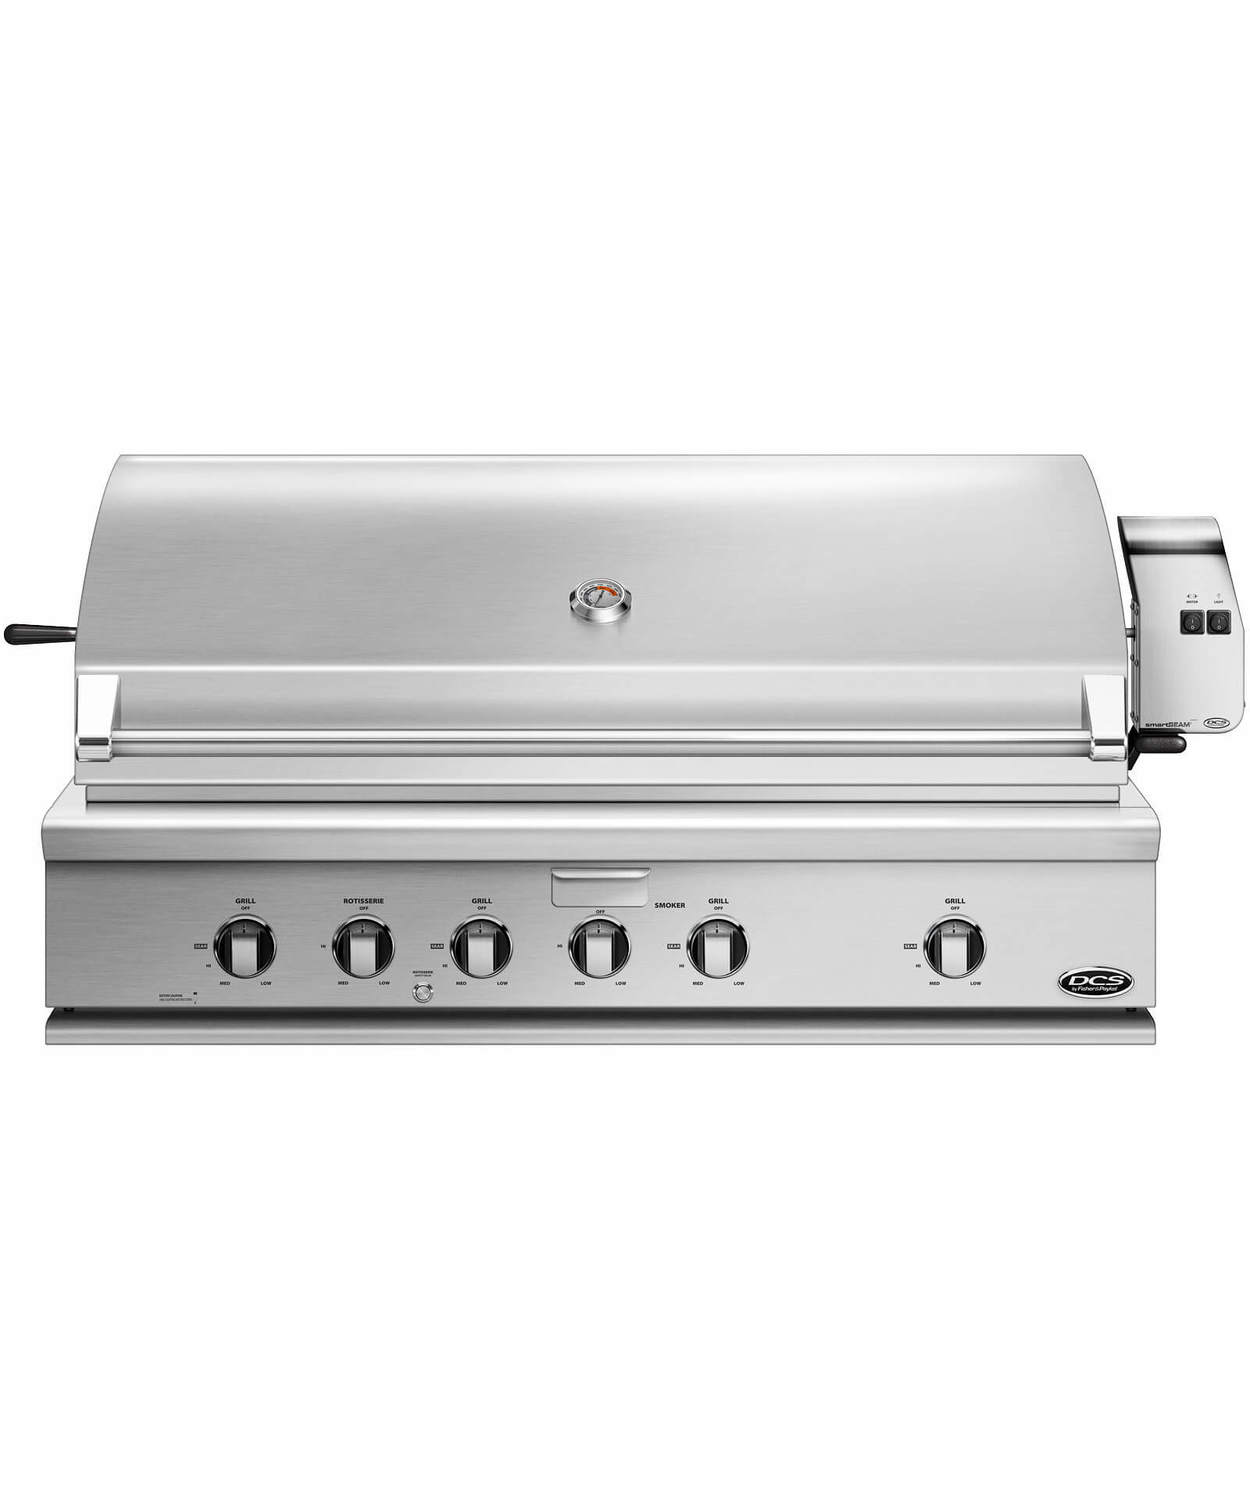 "Dcs48"" Series 7 Grill, Lp Gas"